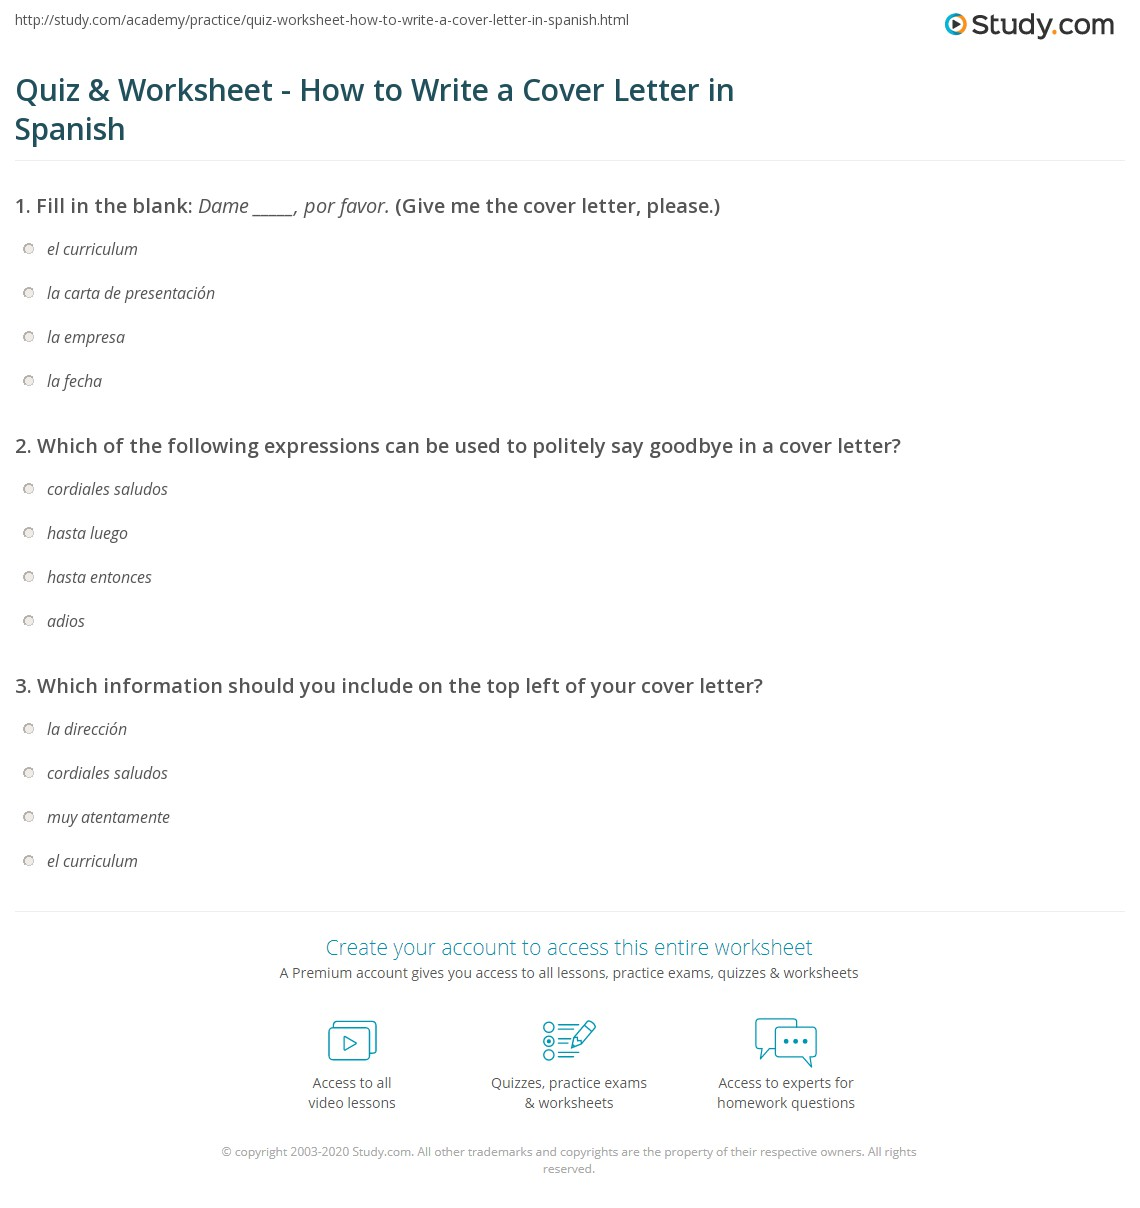 Quiz & Worksheet - How to Write a Cover Letter in Spanish | Study com